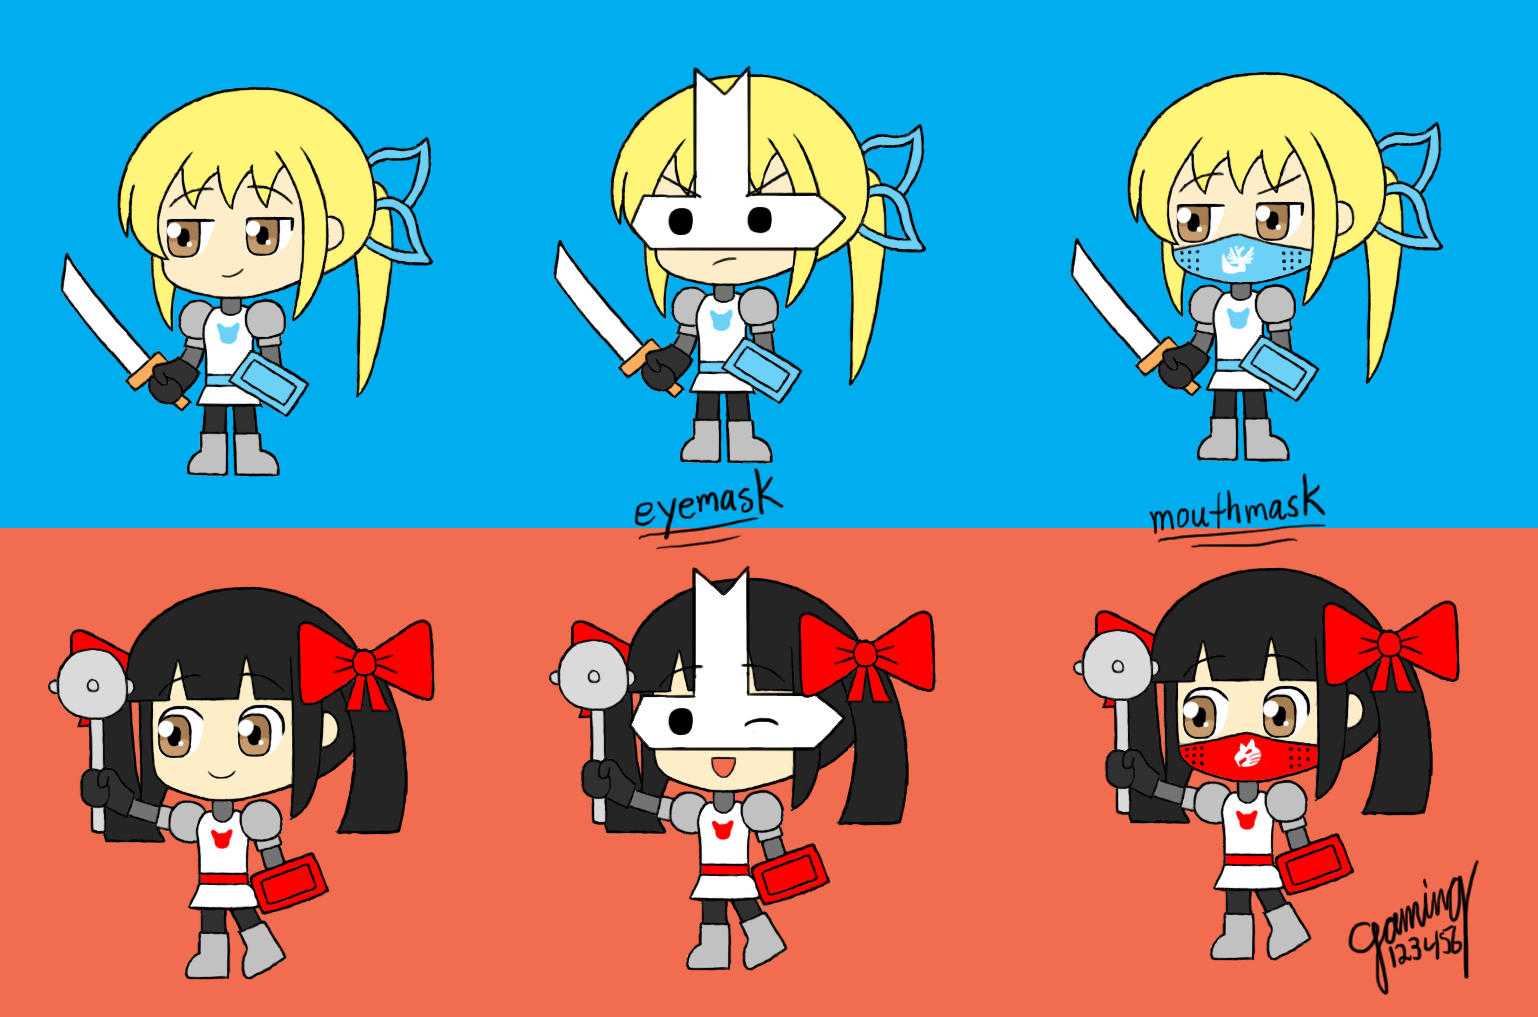 Castle crashers musou variations by gaming123456 on - Castle crashers anime ...